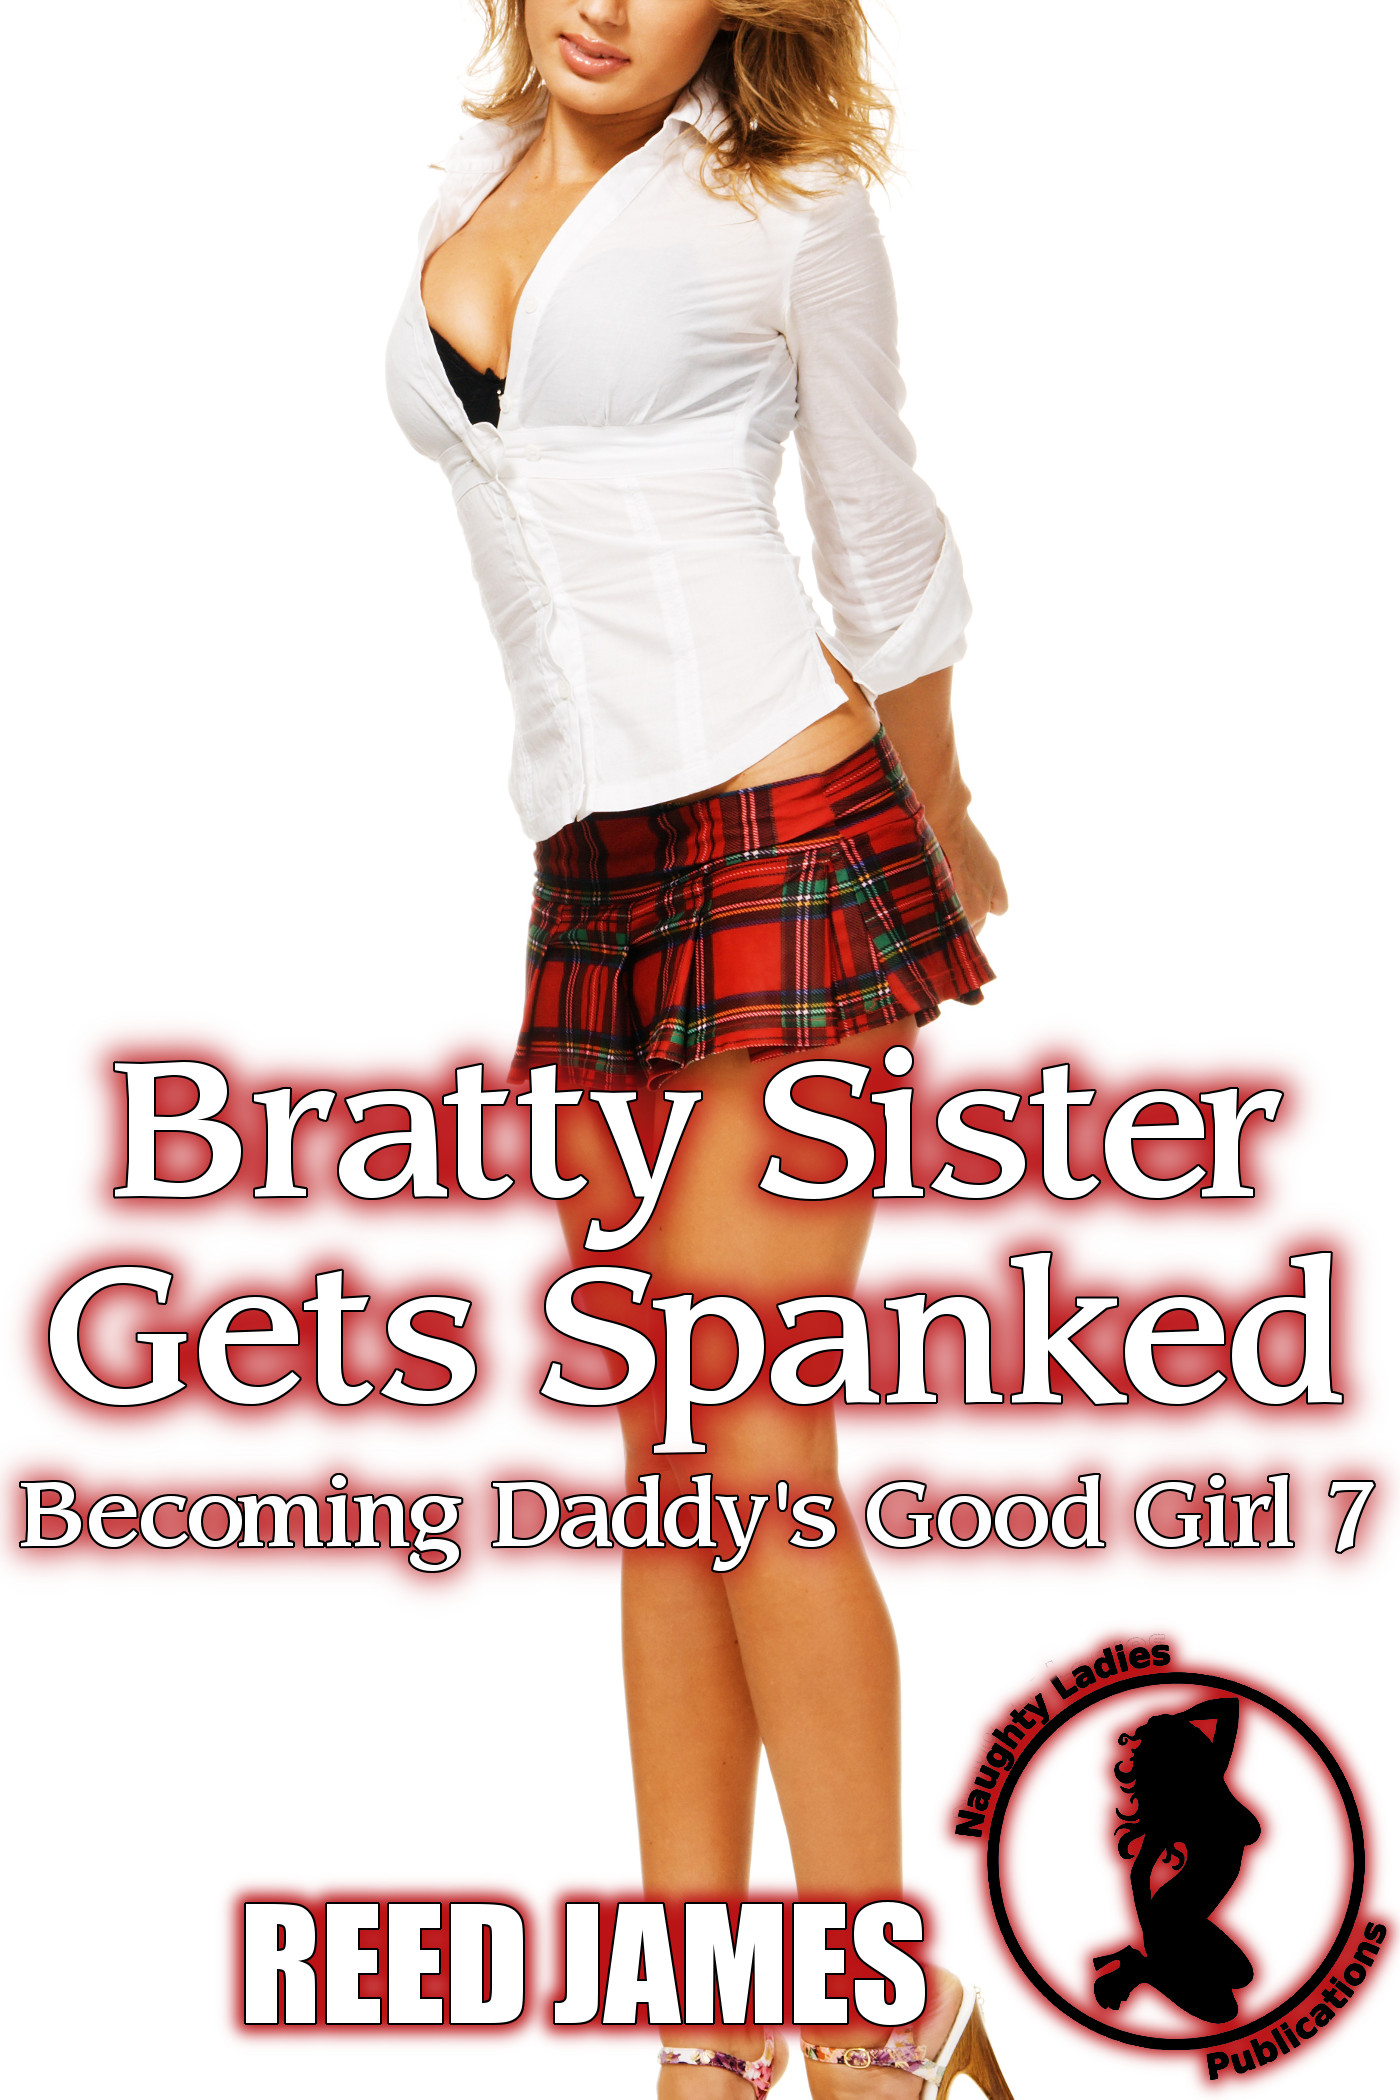 Bratty Sister Gets Spanked (Becoming Daddy's Good Girl 7)